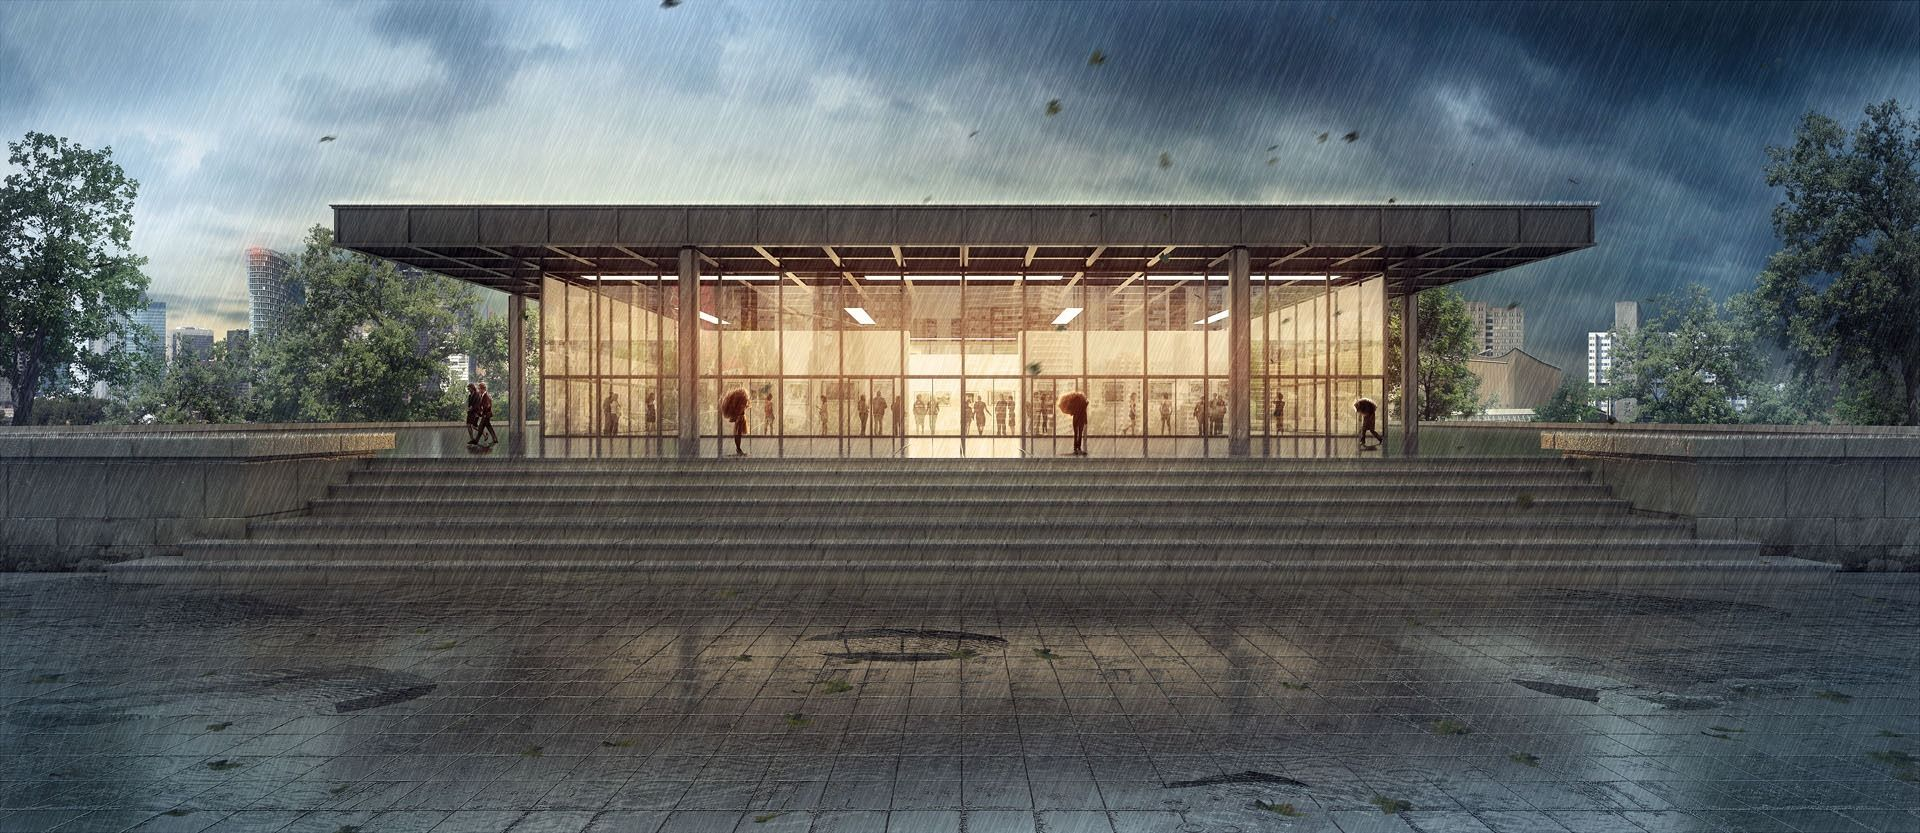 Making of neue nationalgalerie in the rain ronen - 3d architectural visualization ...